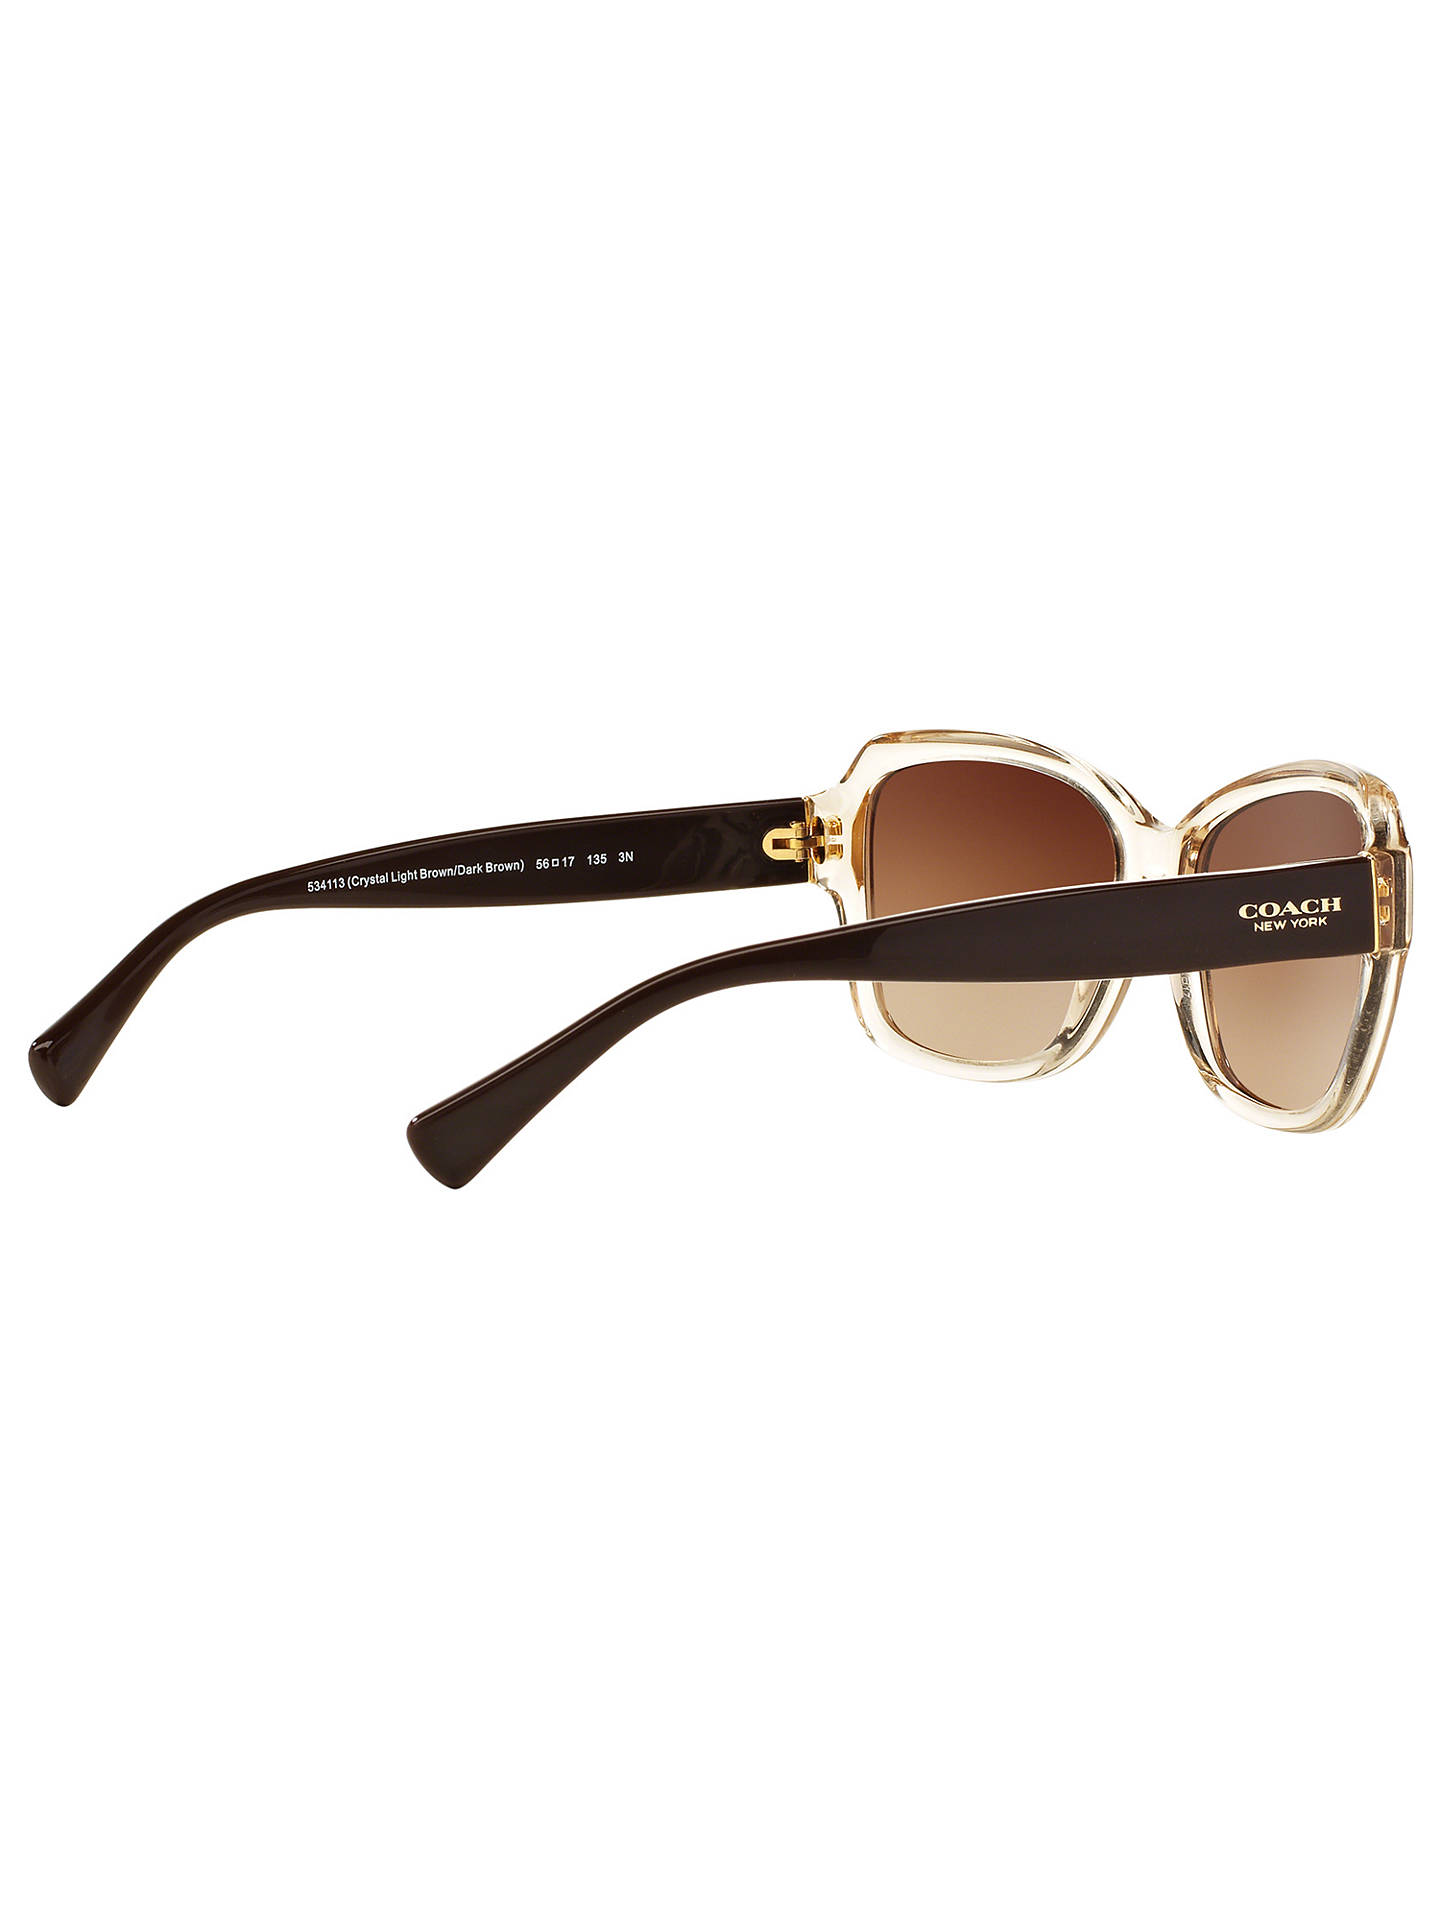 26cb8c8f7a6dd ... Buy Coach HC8160 Square Sunglasses